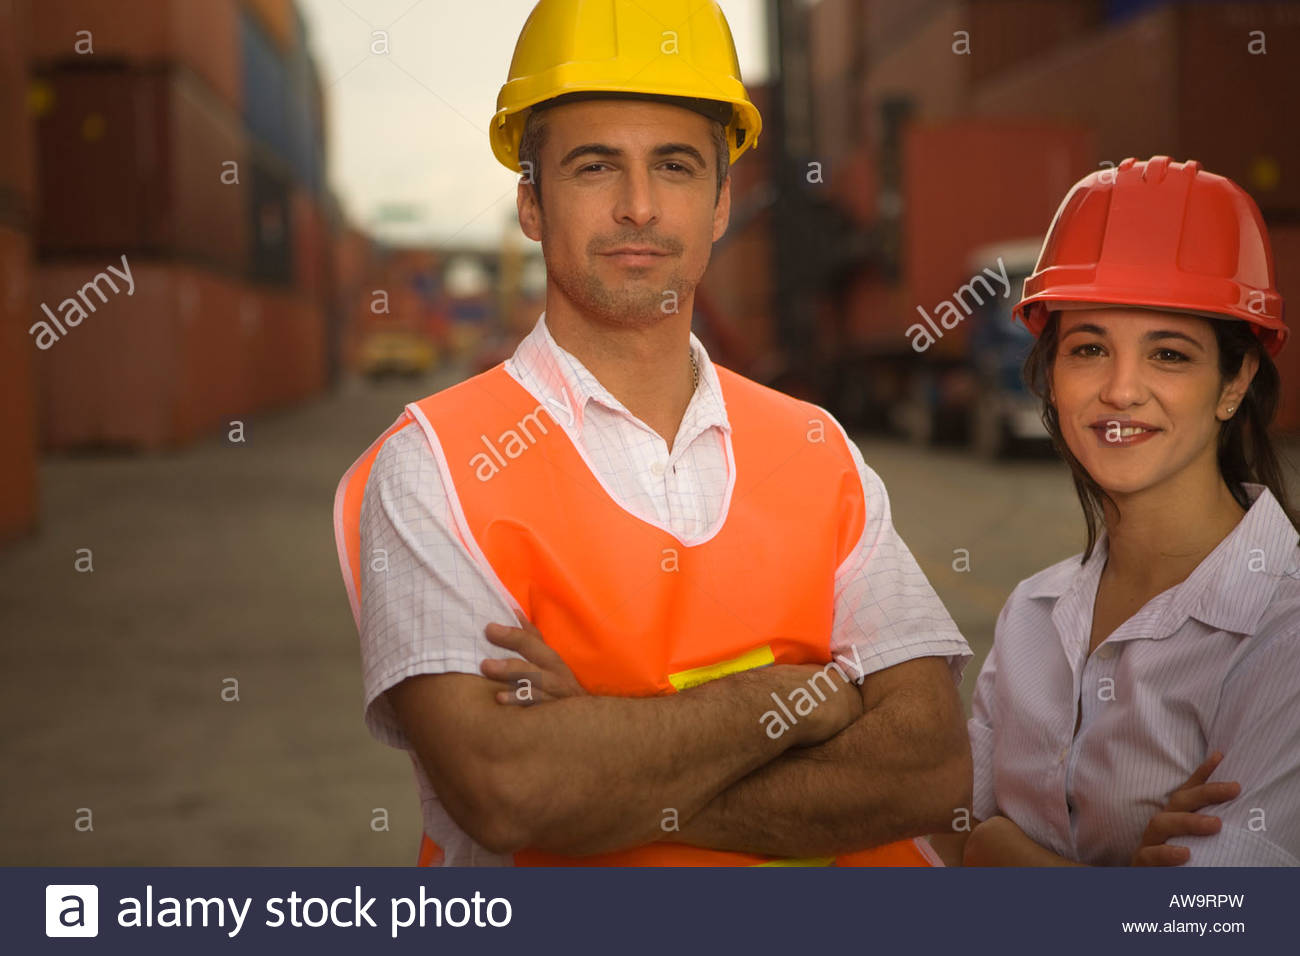 Portrait of two dock workers standing at a commercial dock and smiling - Stock Image